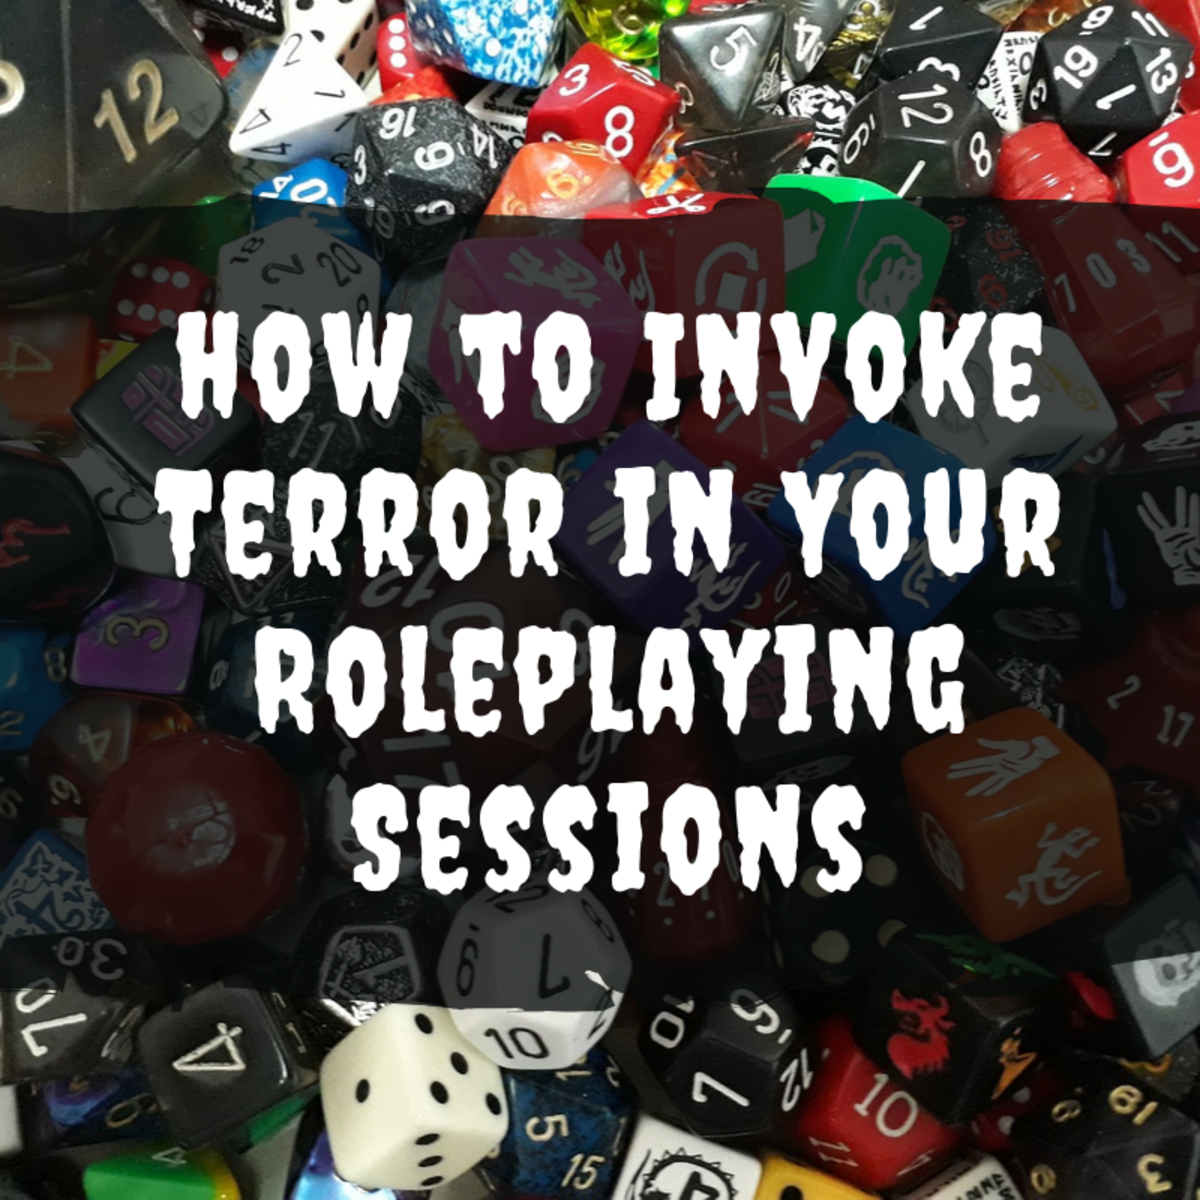 With a little bit of planning, and keeping some basic tips in mind, you can do the impossible and instill a sense of pseudo-fear in your players.